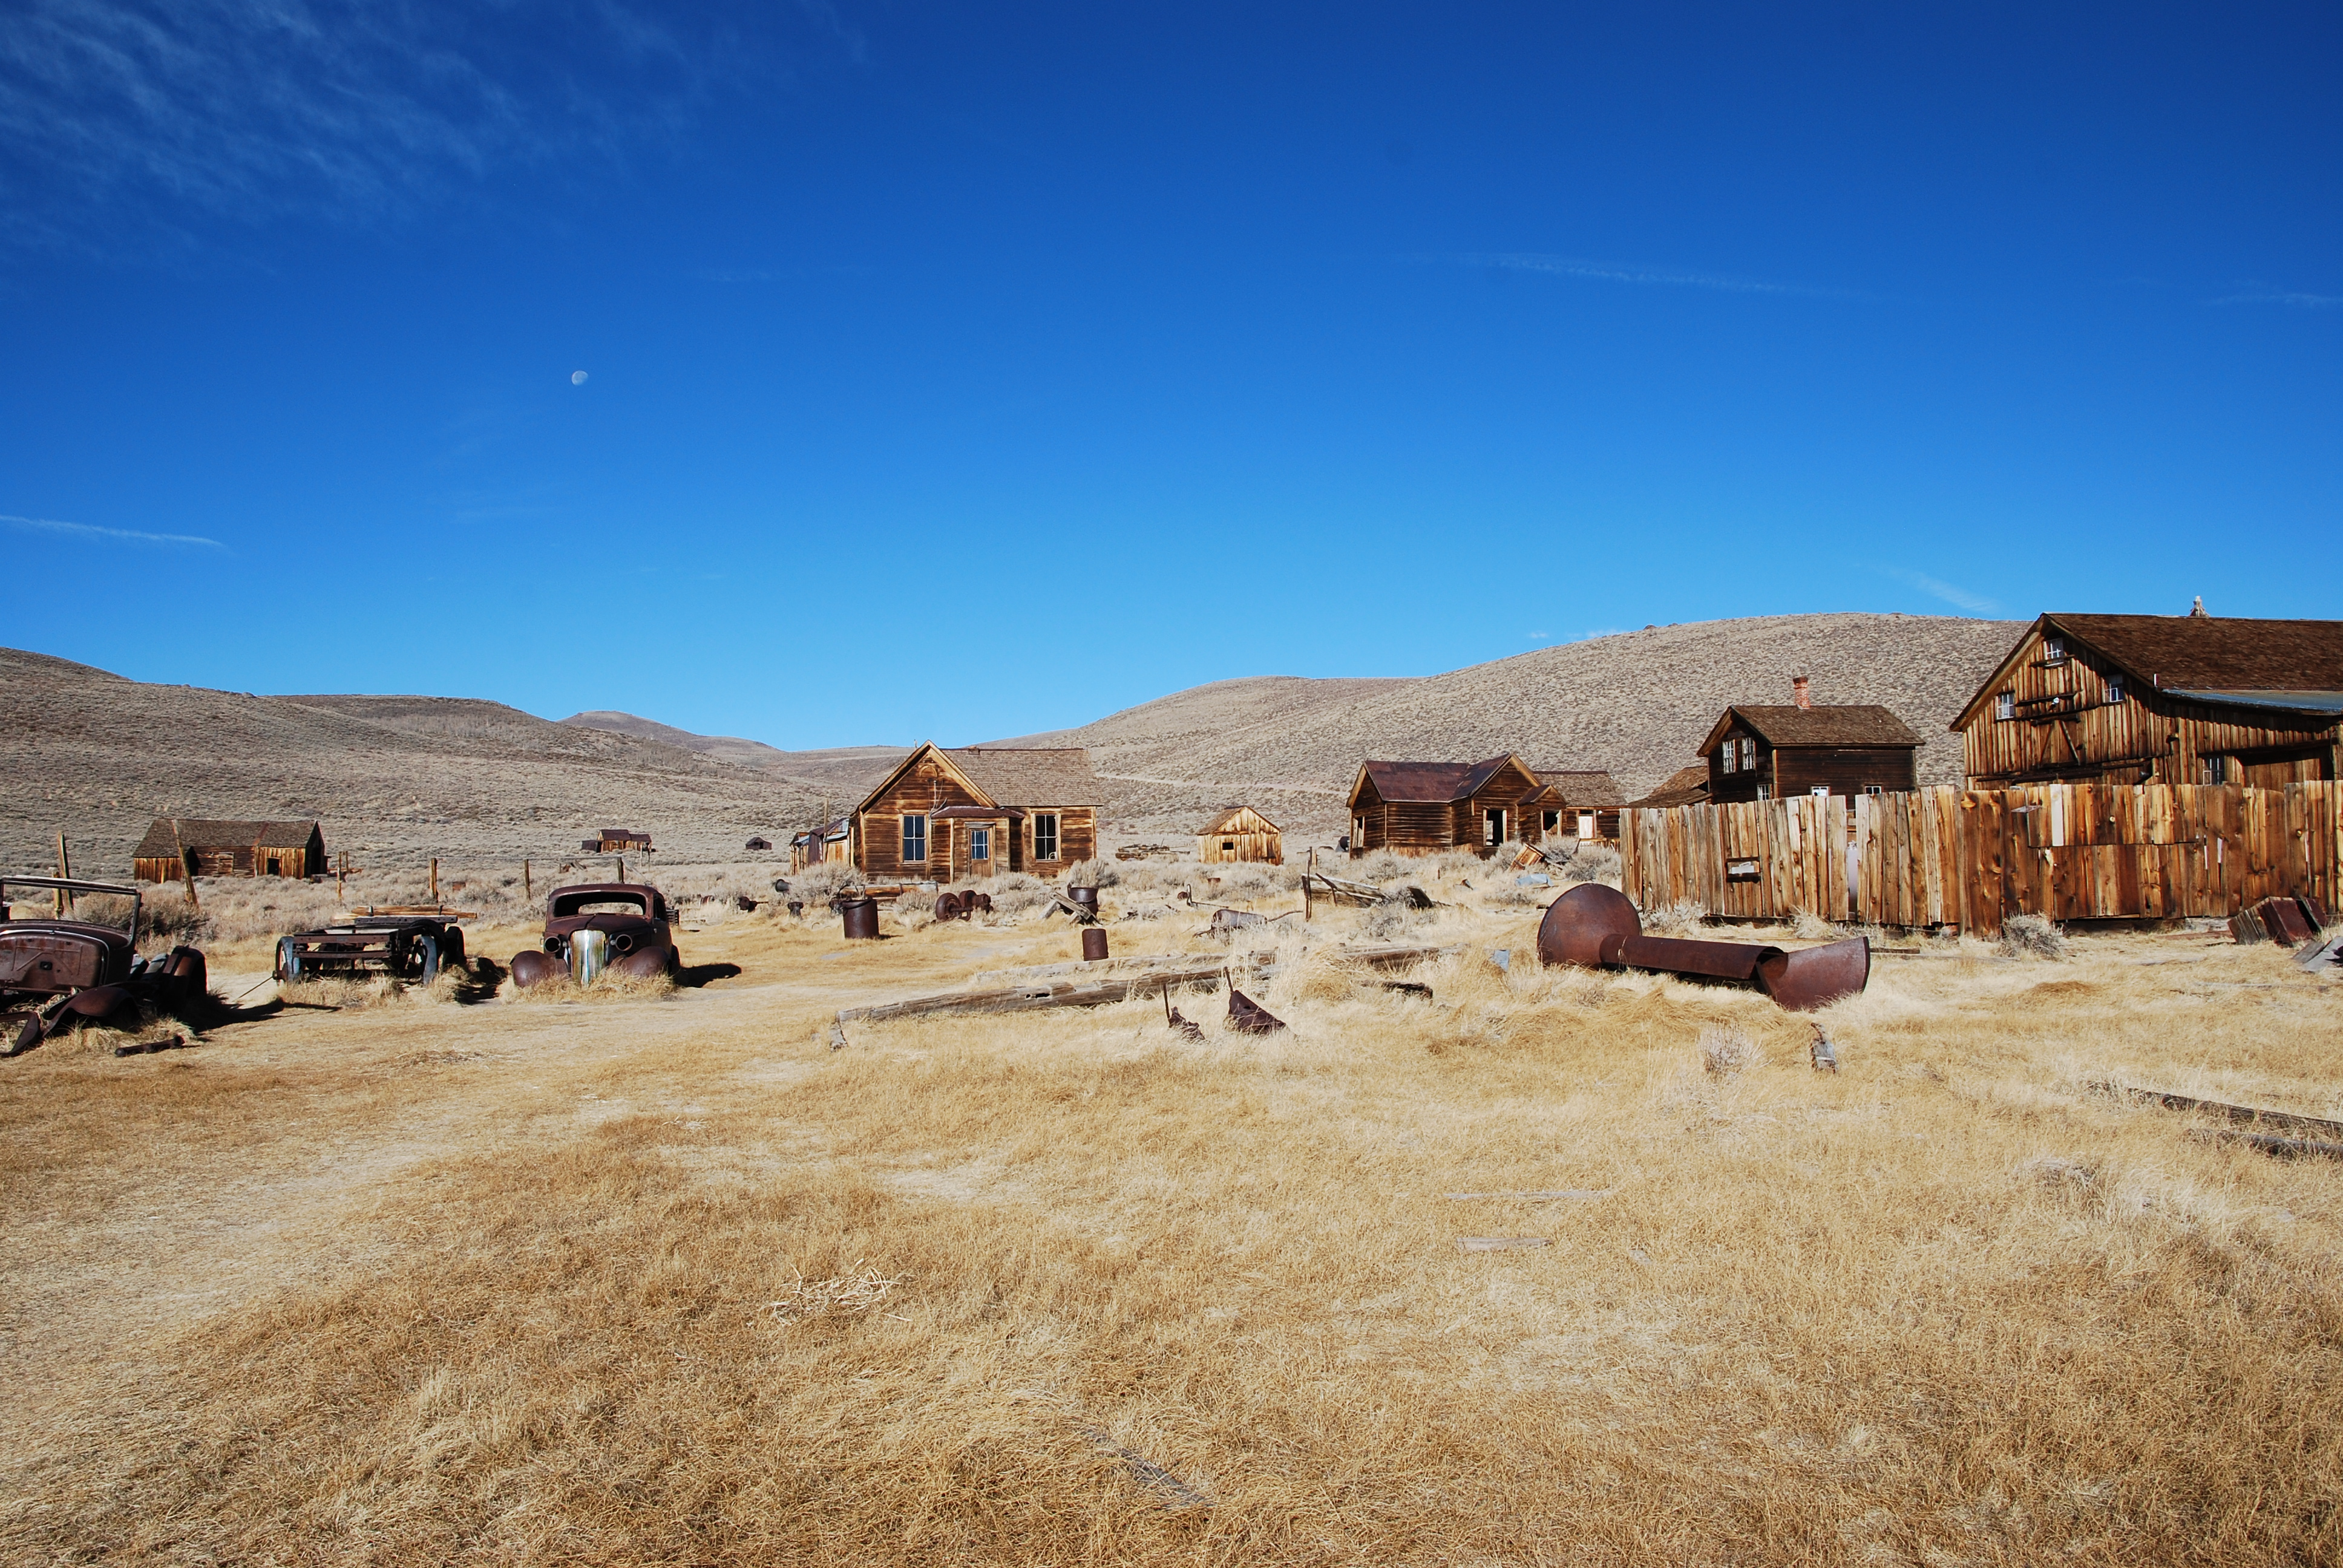 http://upload.wikimedia.org/wikipedia/commons/a/a6/Bodie_CA_-_ghost_town.jpg